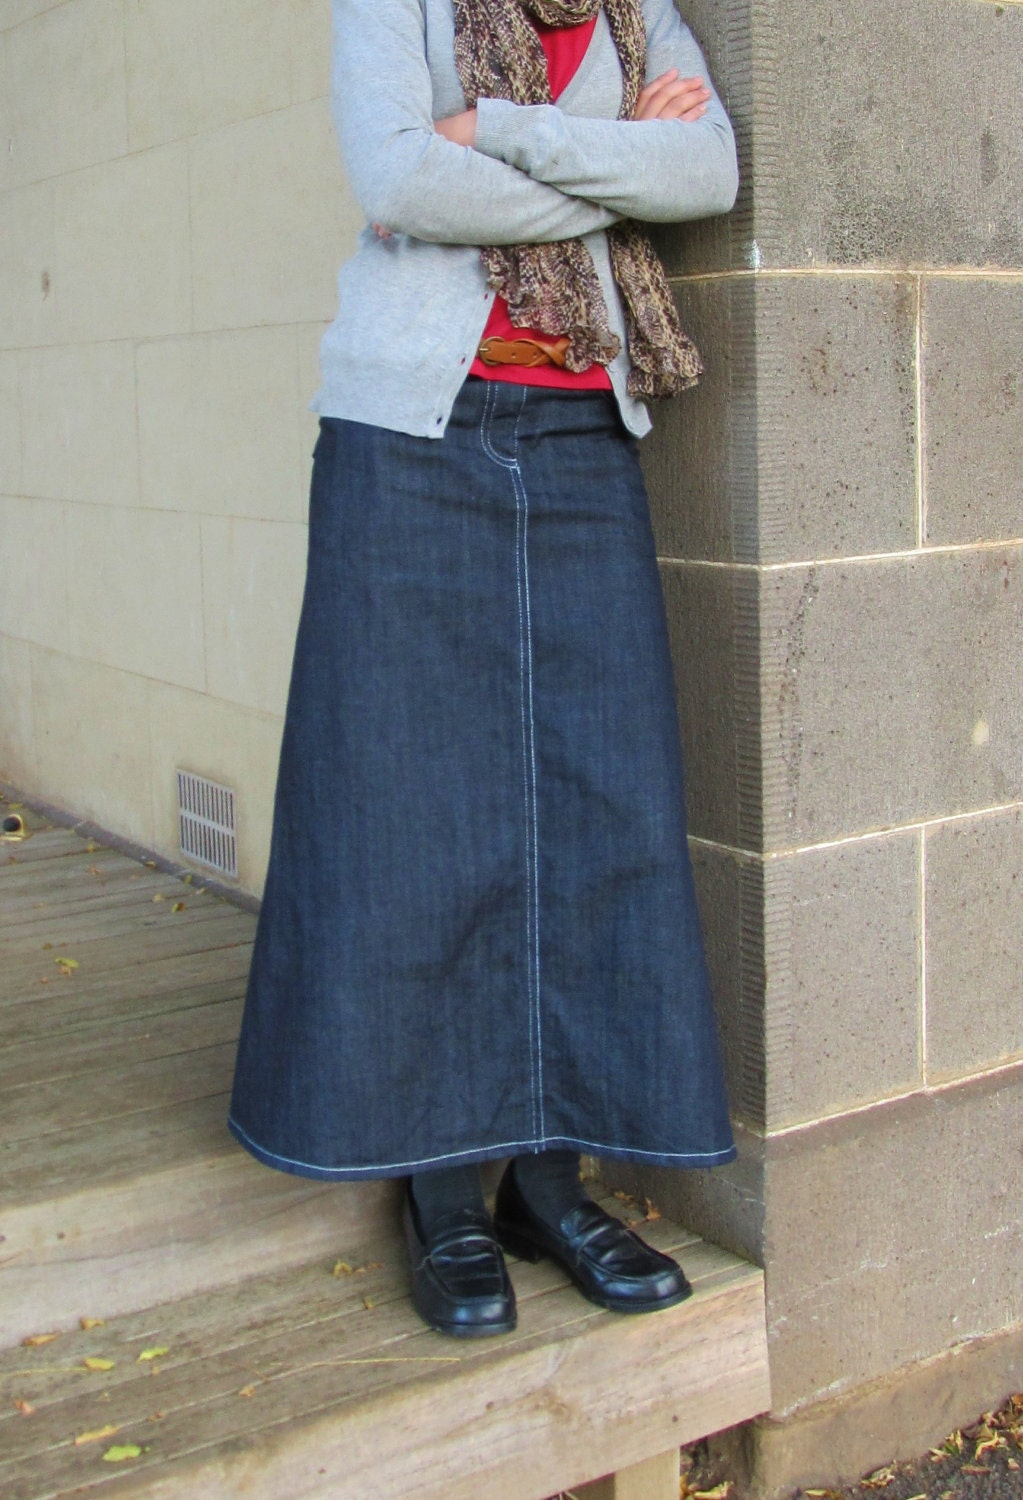 Western Skirts | Dressed Up Girl |Western Long Denim Skirts Modest